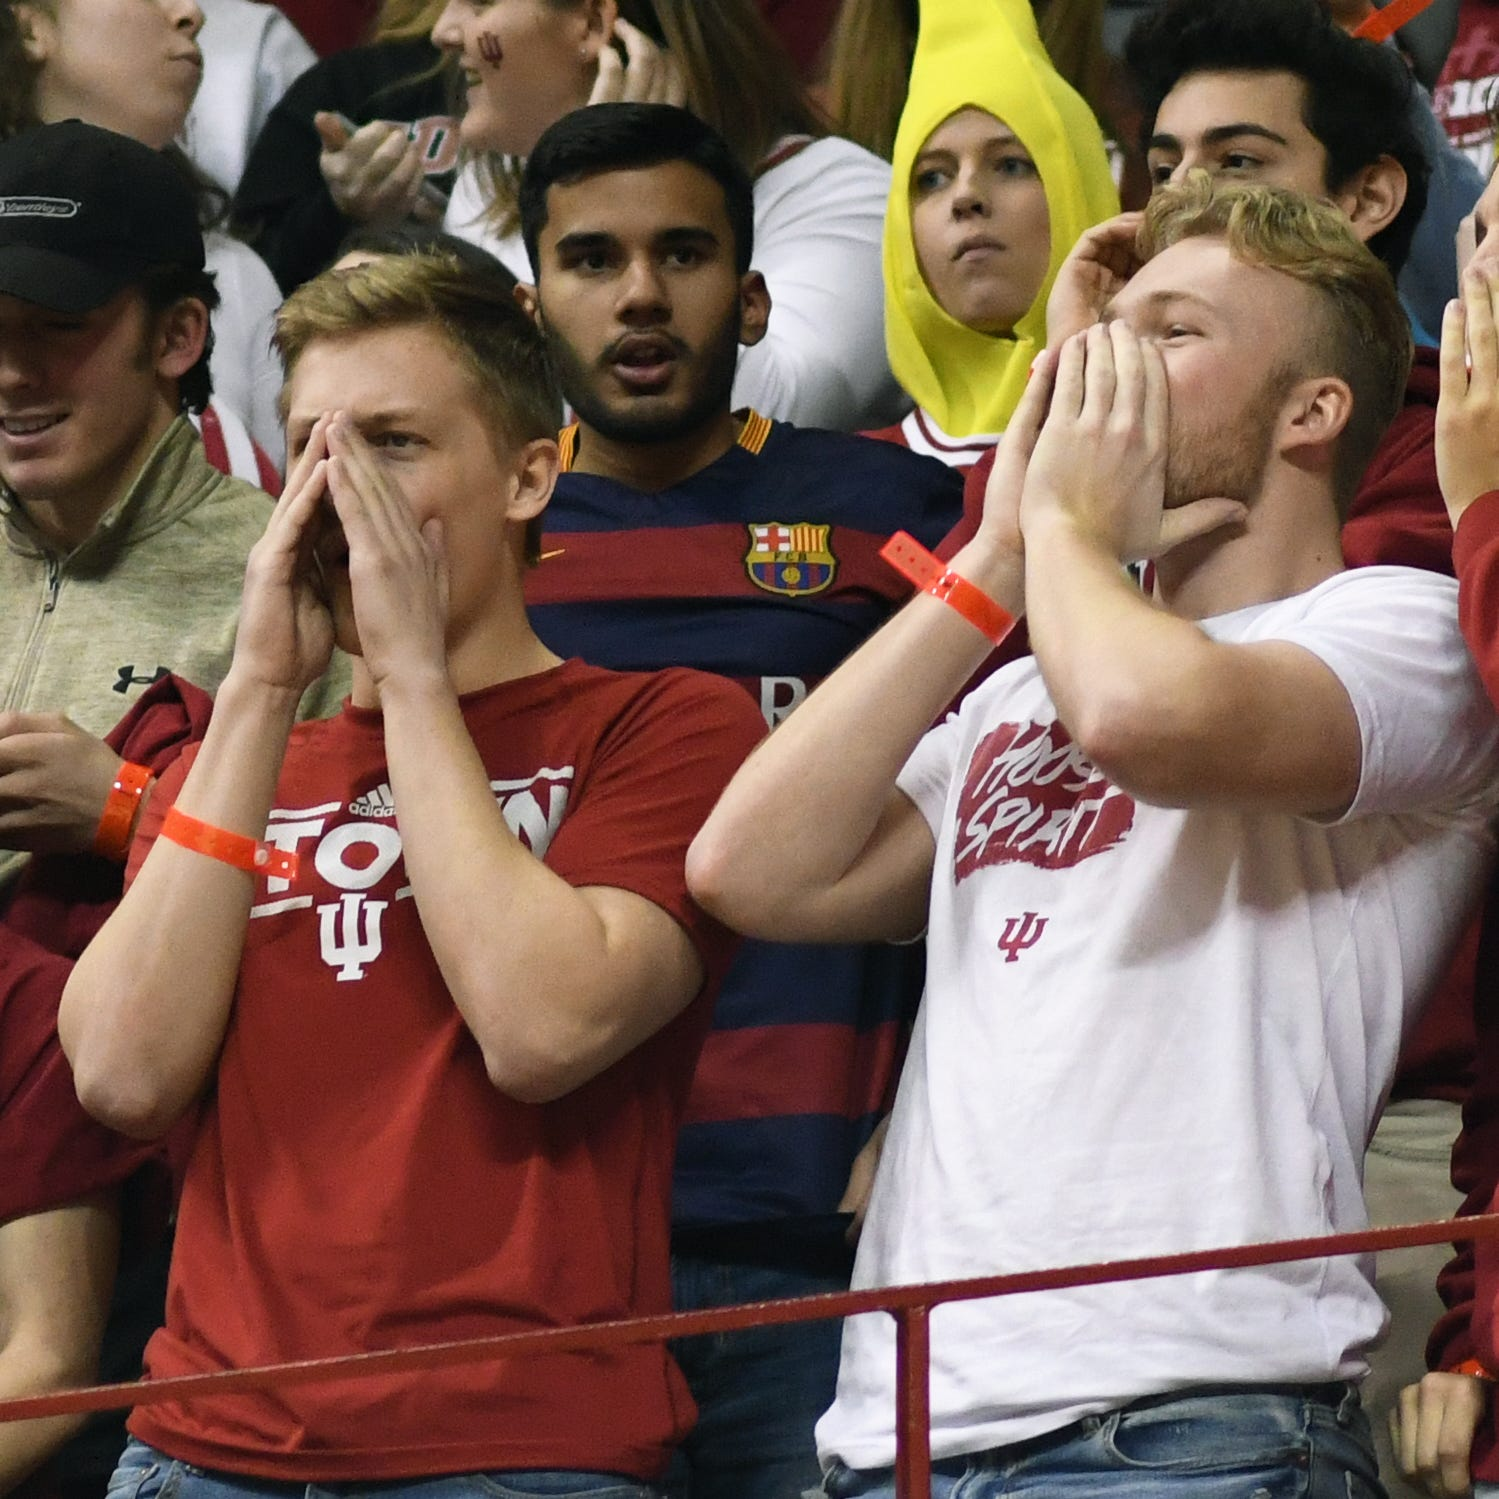 Fred Glass on IU profane chants: 'They were embarrassing and unacceptable.'